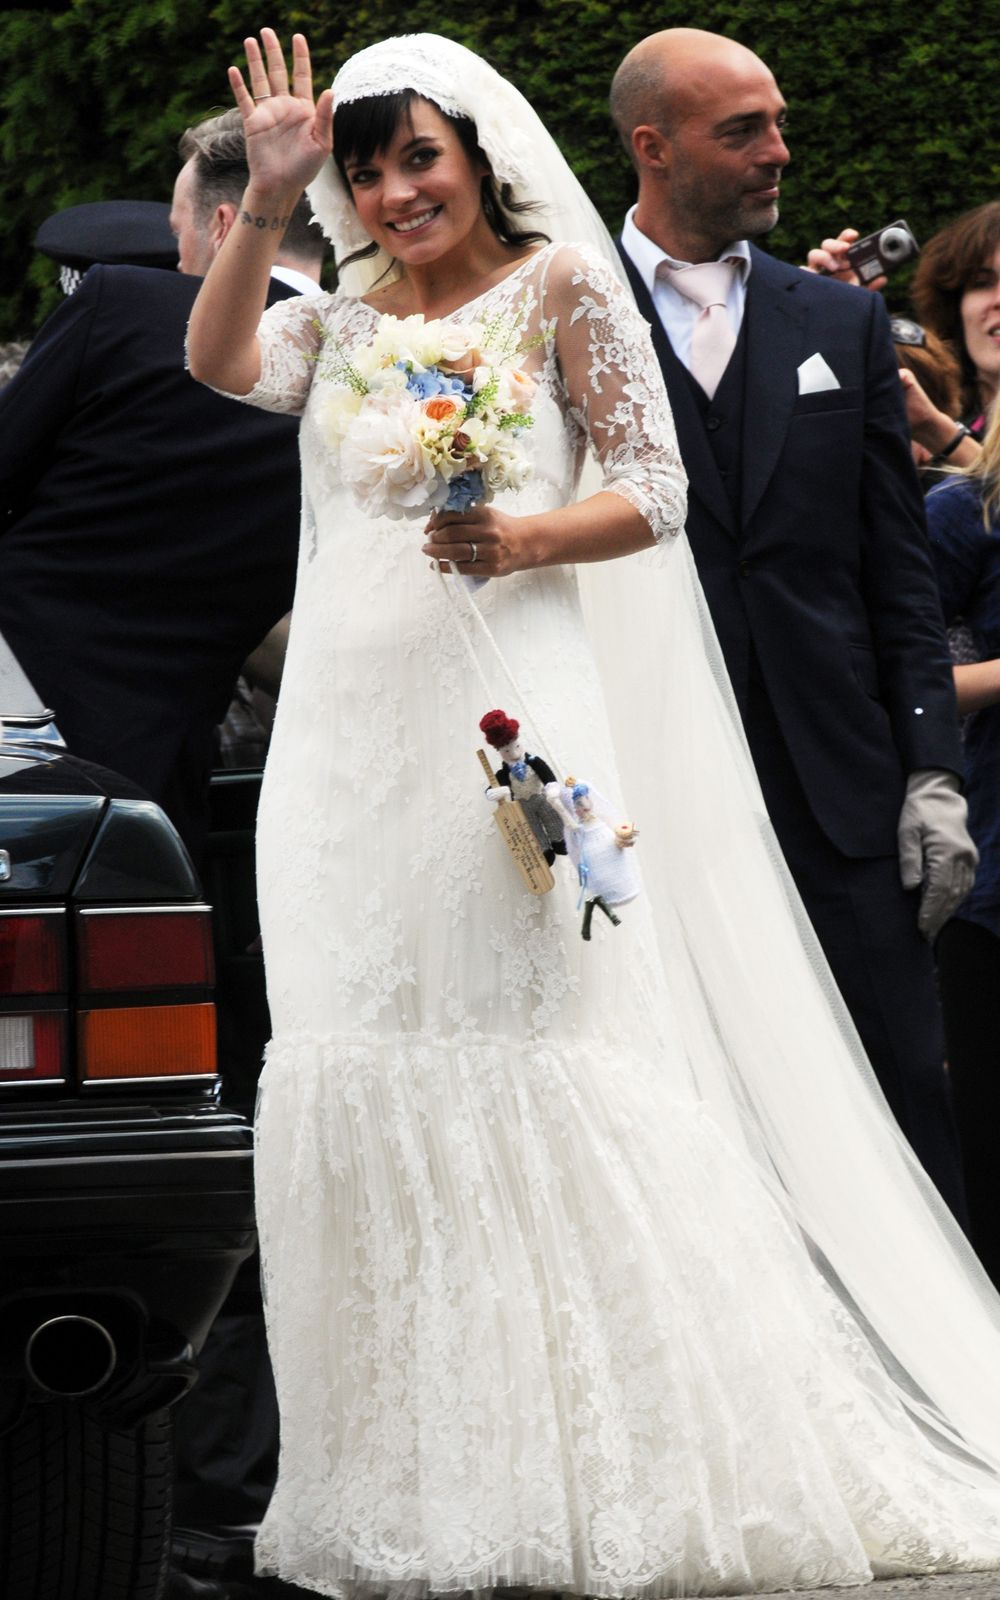 Best wedding dresses of all time  Best Celebrity Wedding Dresses  Fashion styles Celebrity weddings